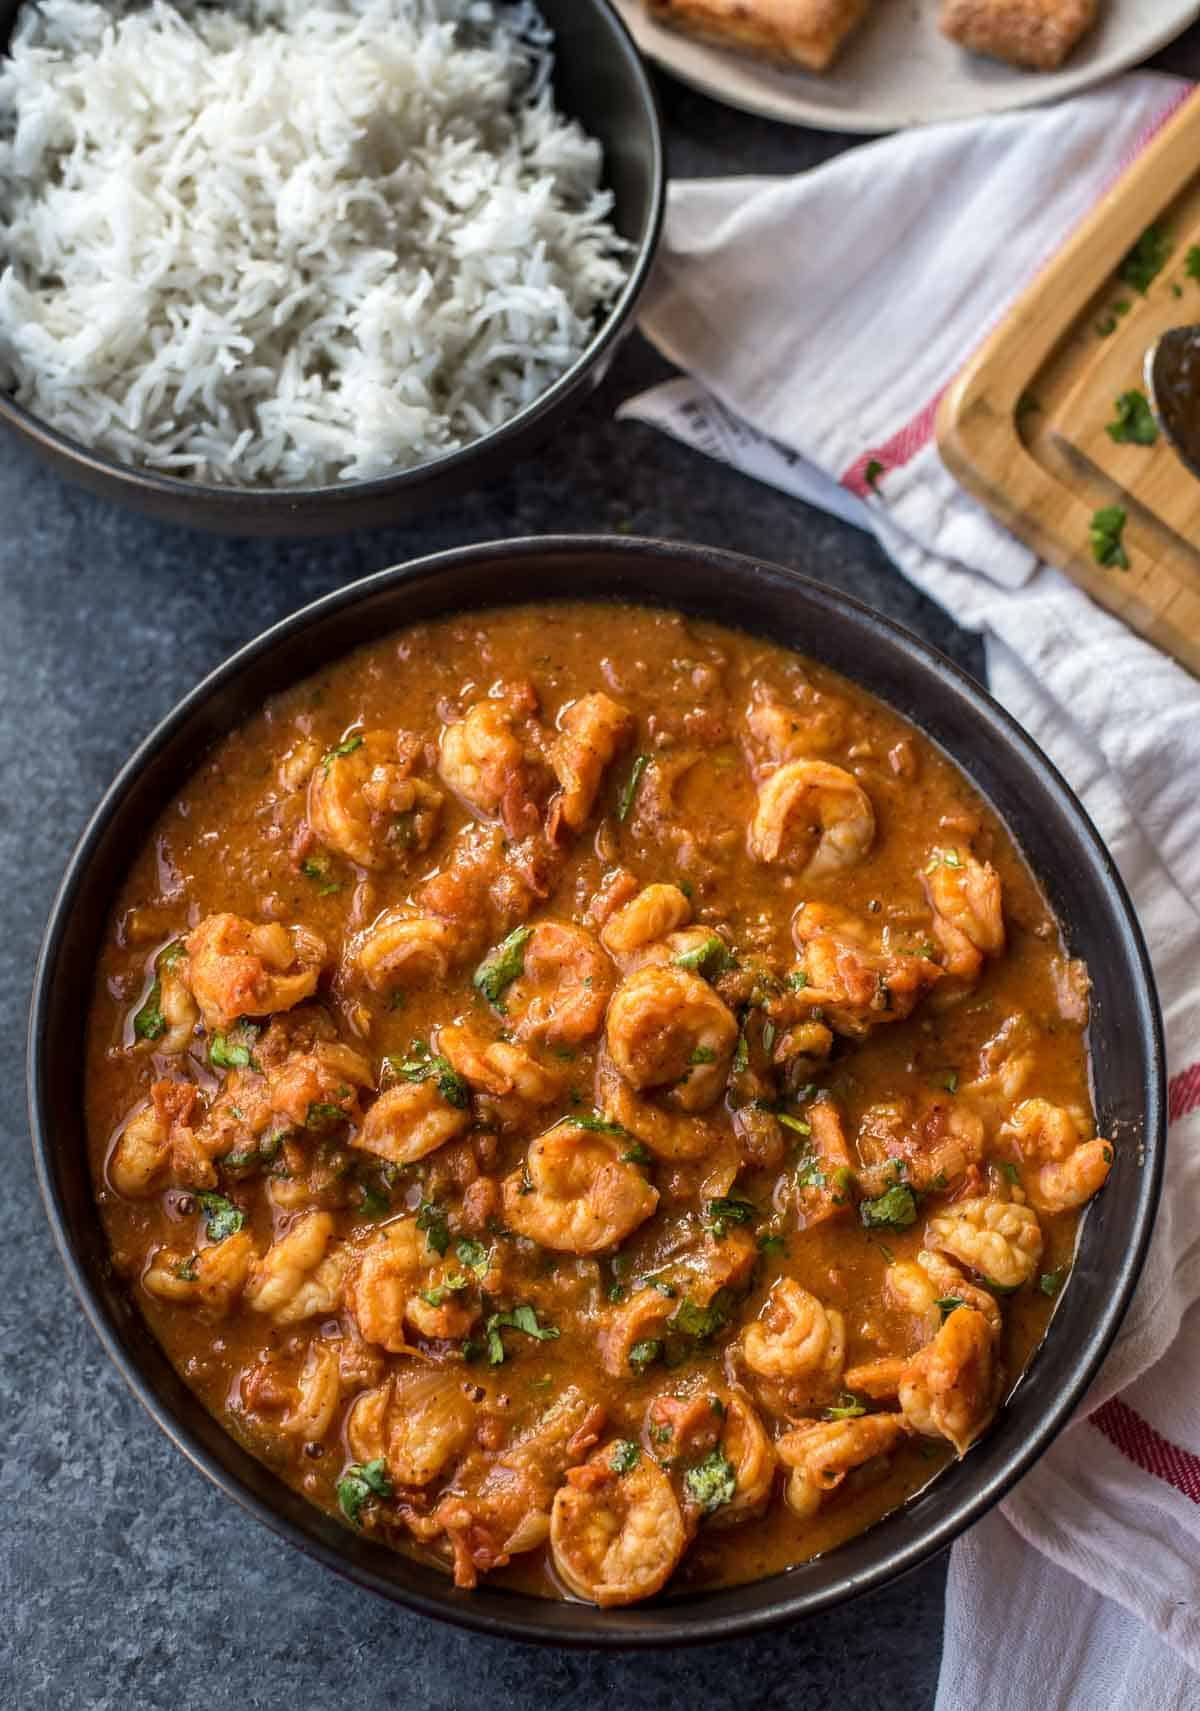 Prawns balchao served in a black bowl alongside rice